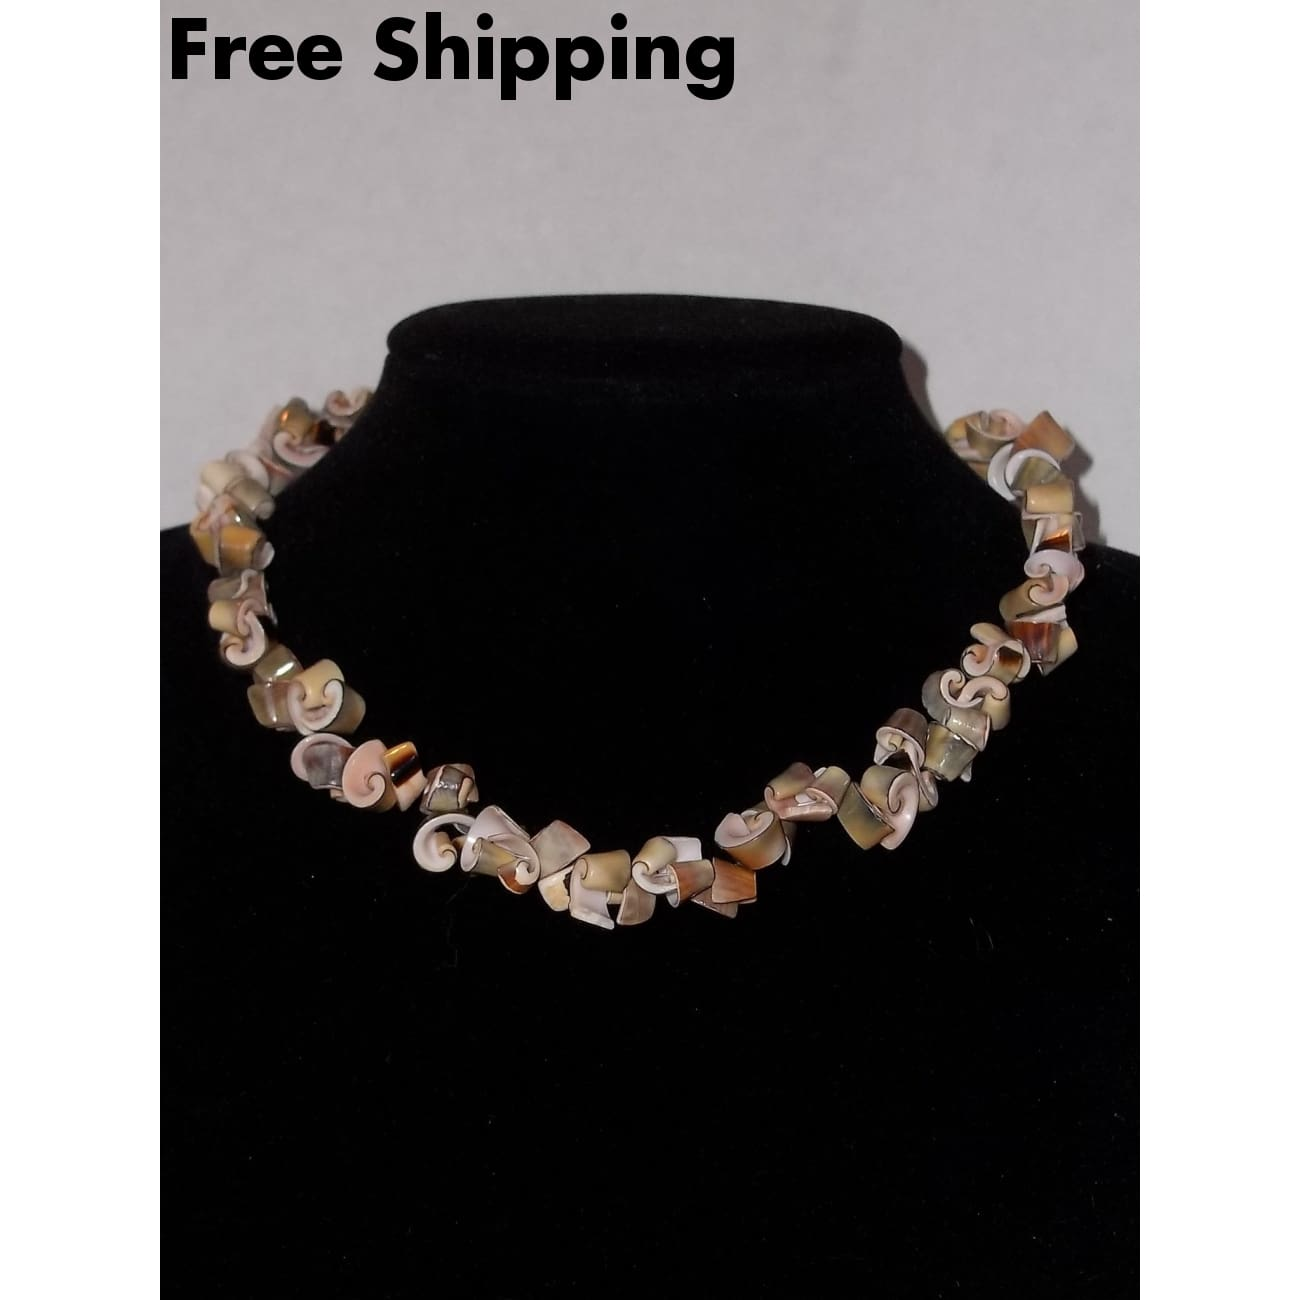 Vintage Hand Crafted Sea Shell Choker Necklace - Necklaces & Pendants